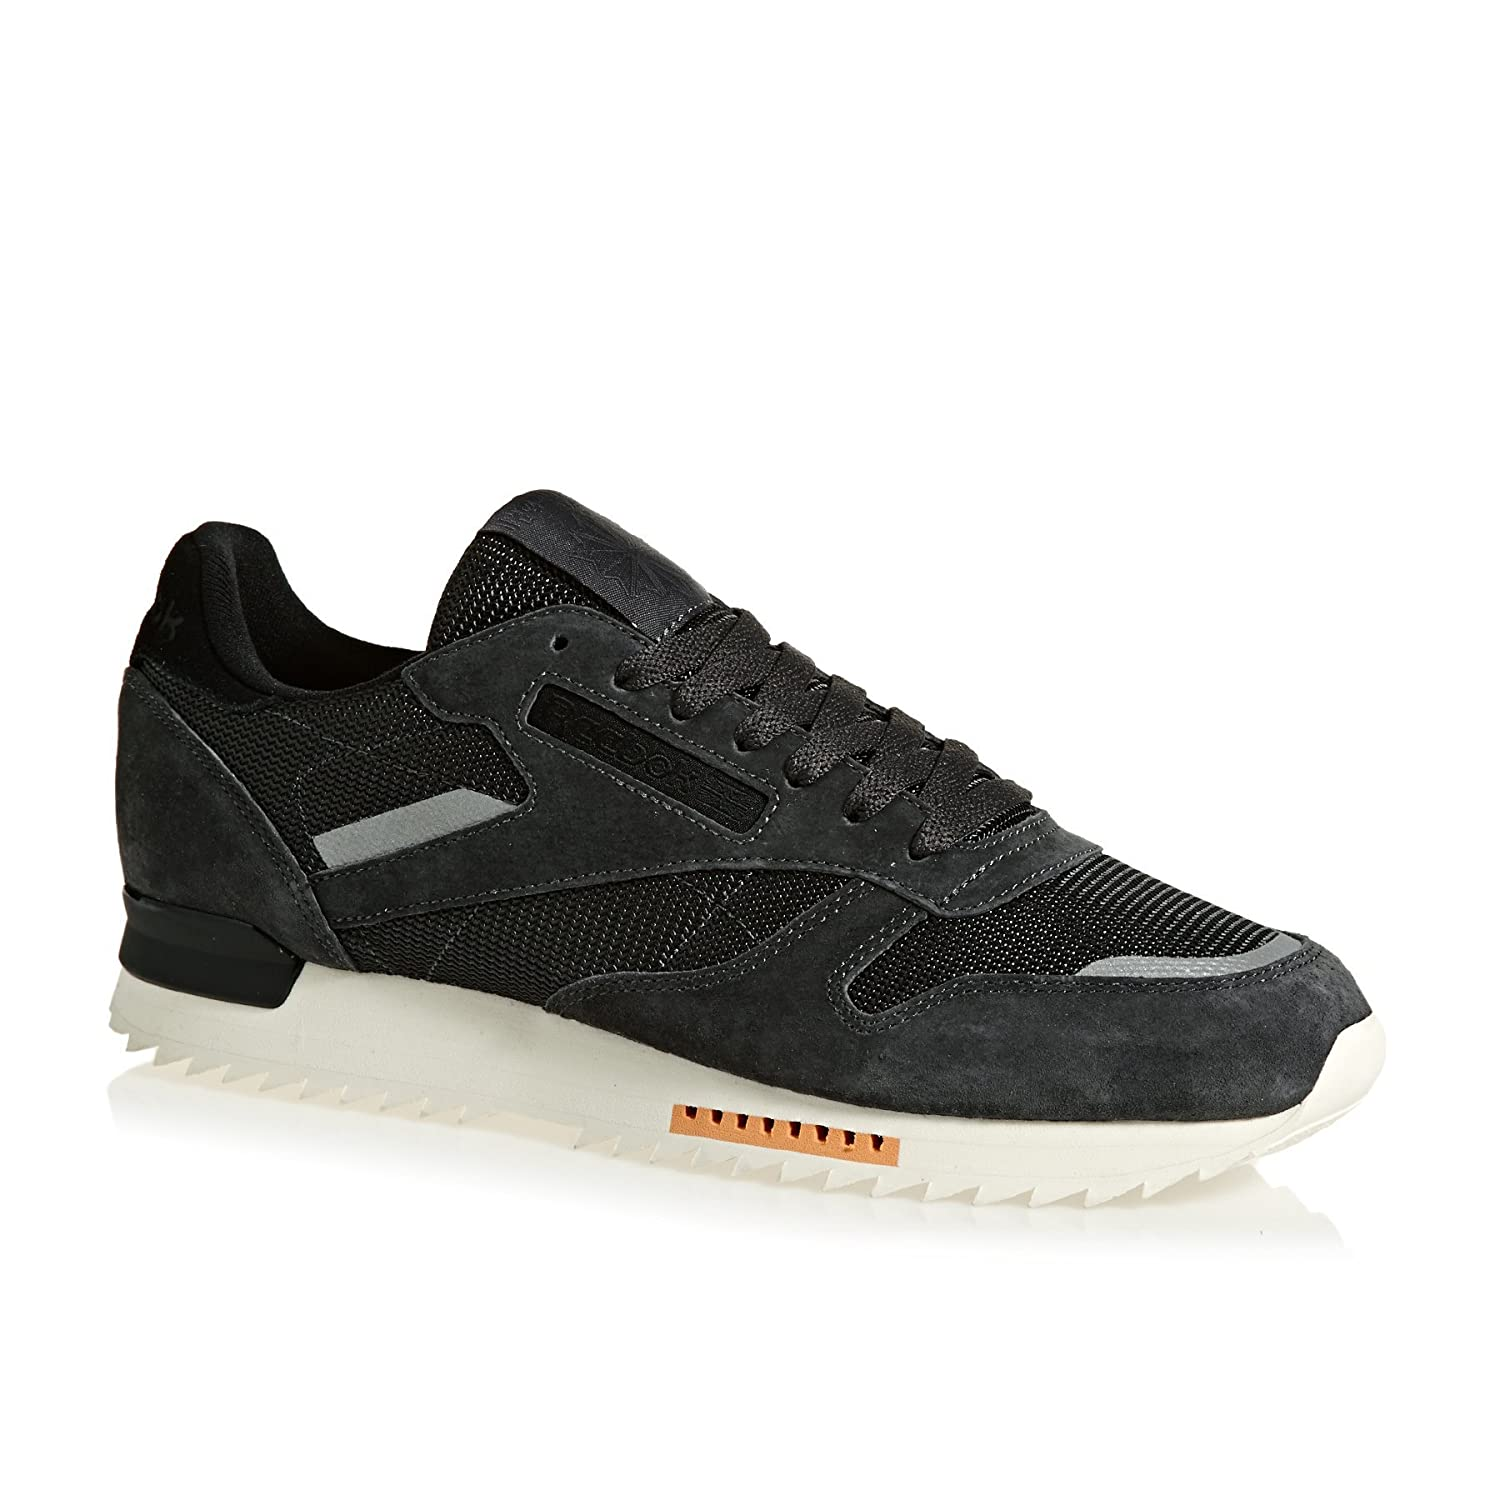 d855ff3850d Reebok Classic Leather Ripple SN Men  Amazon.co.uk  Shoes   Bags